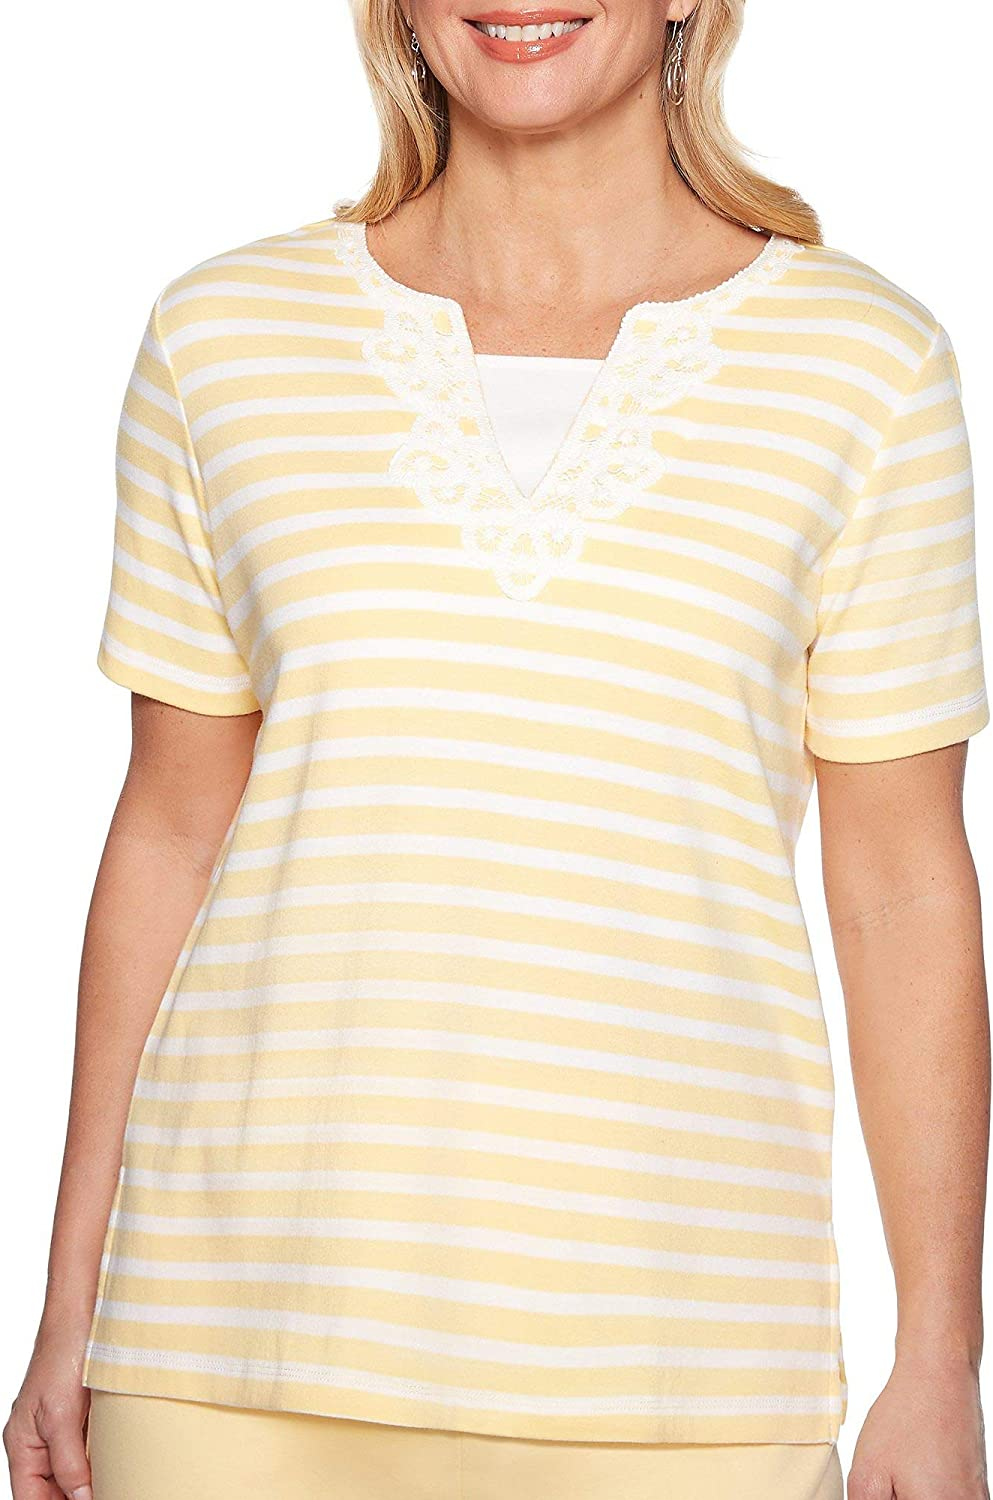 Alfred Dunner Womens Endless Weekend Striped Lace Neck Top